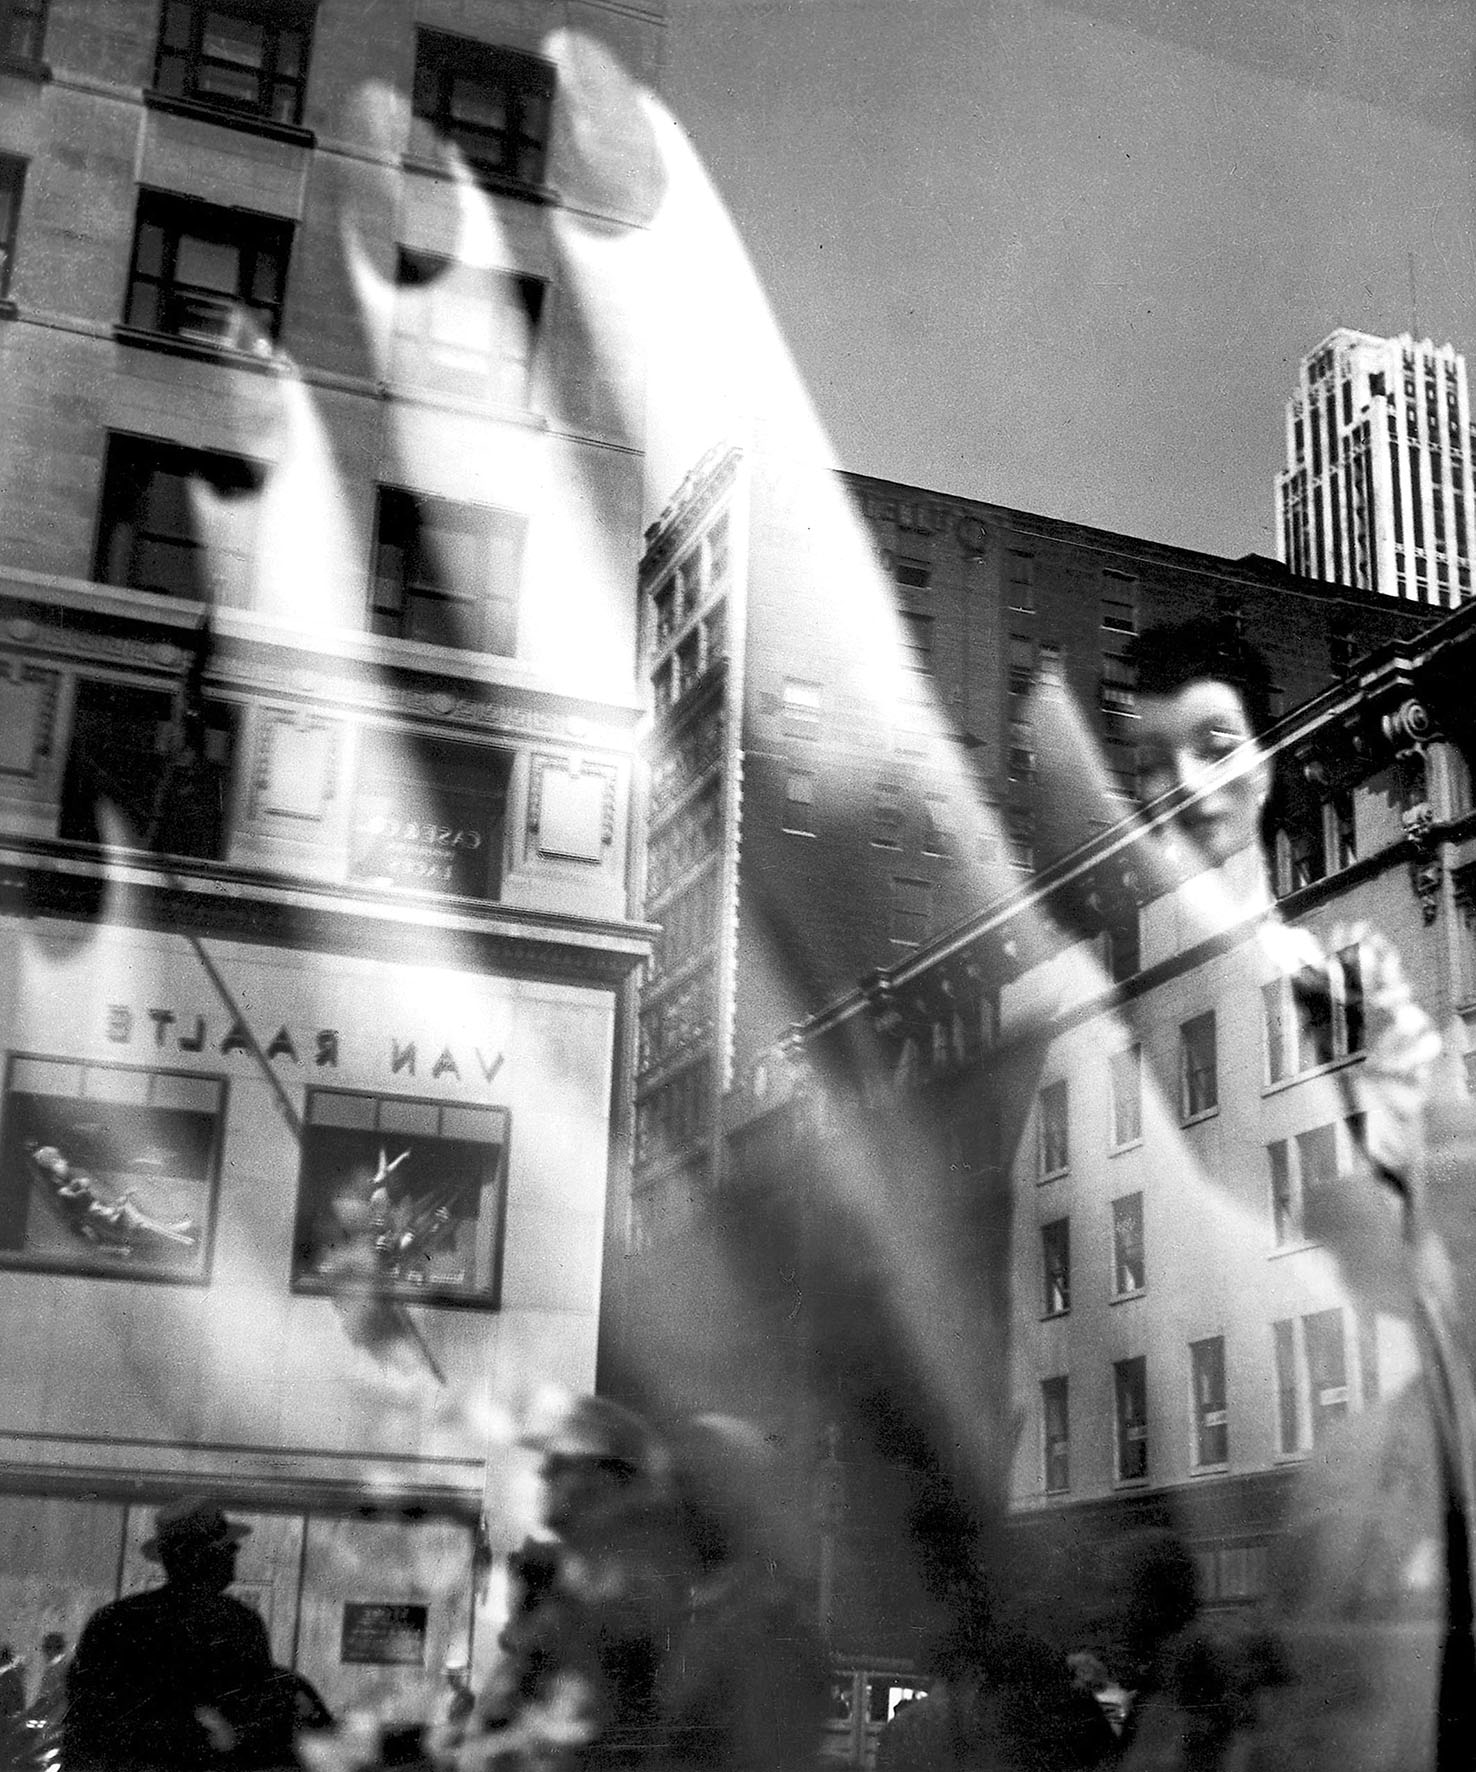 L. Model, 'Reflections', 1941, foto b/n © Baudoin-Lebon/MC2/PHOS